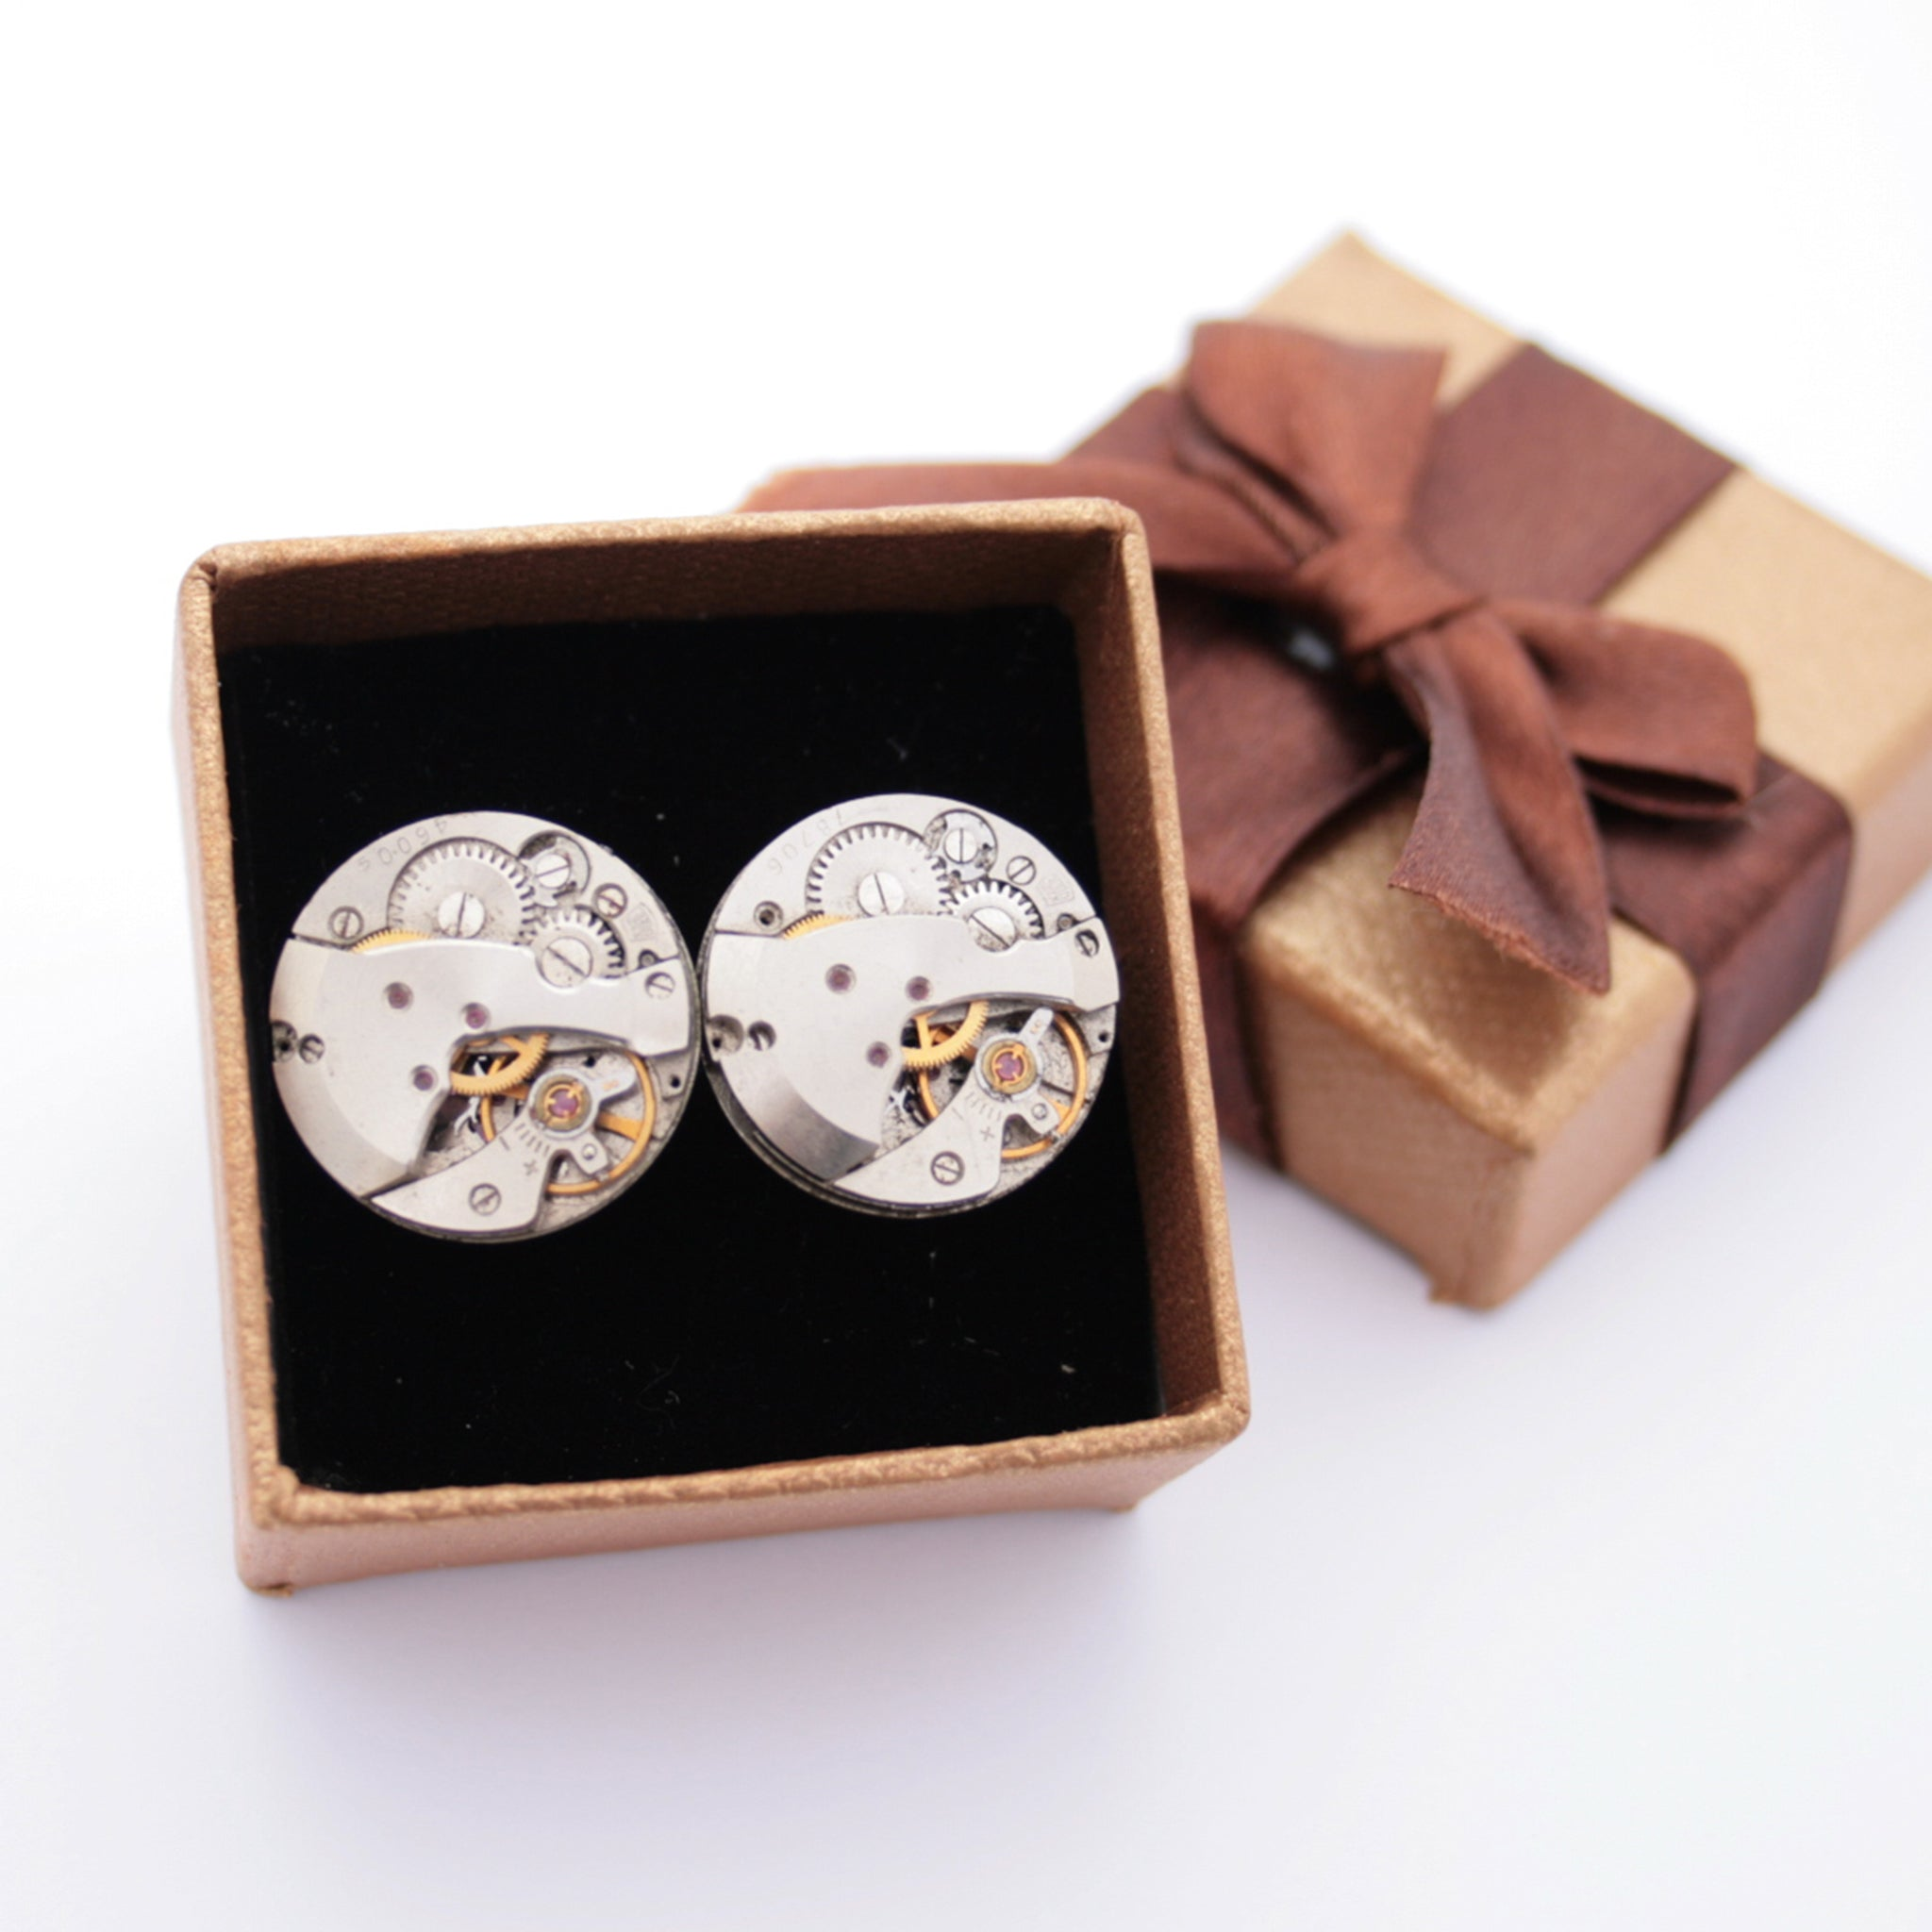 Novelty Watch Cufflinks made of real watches in a brown box with a bow